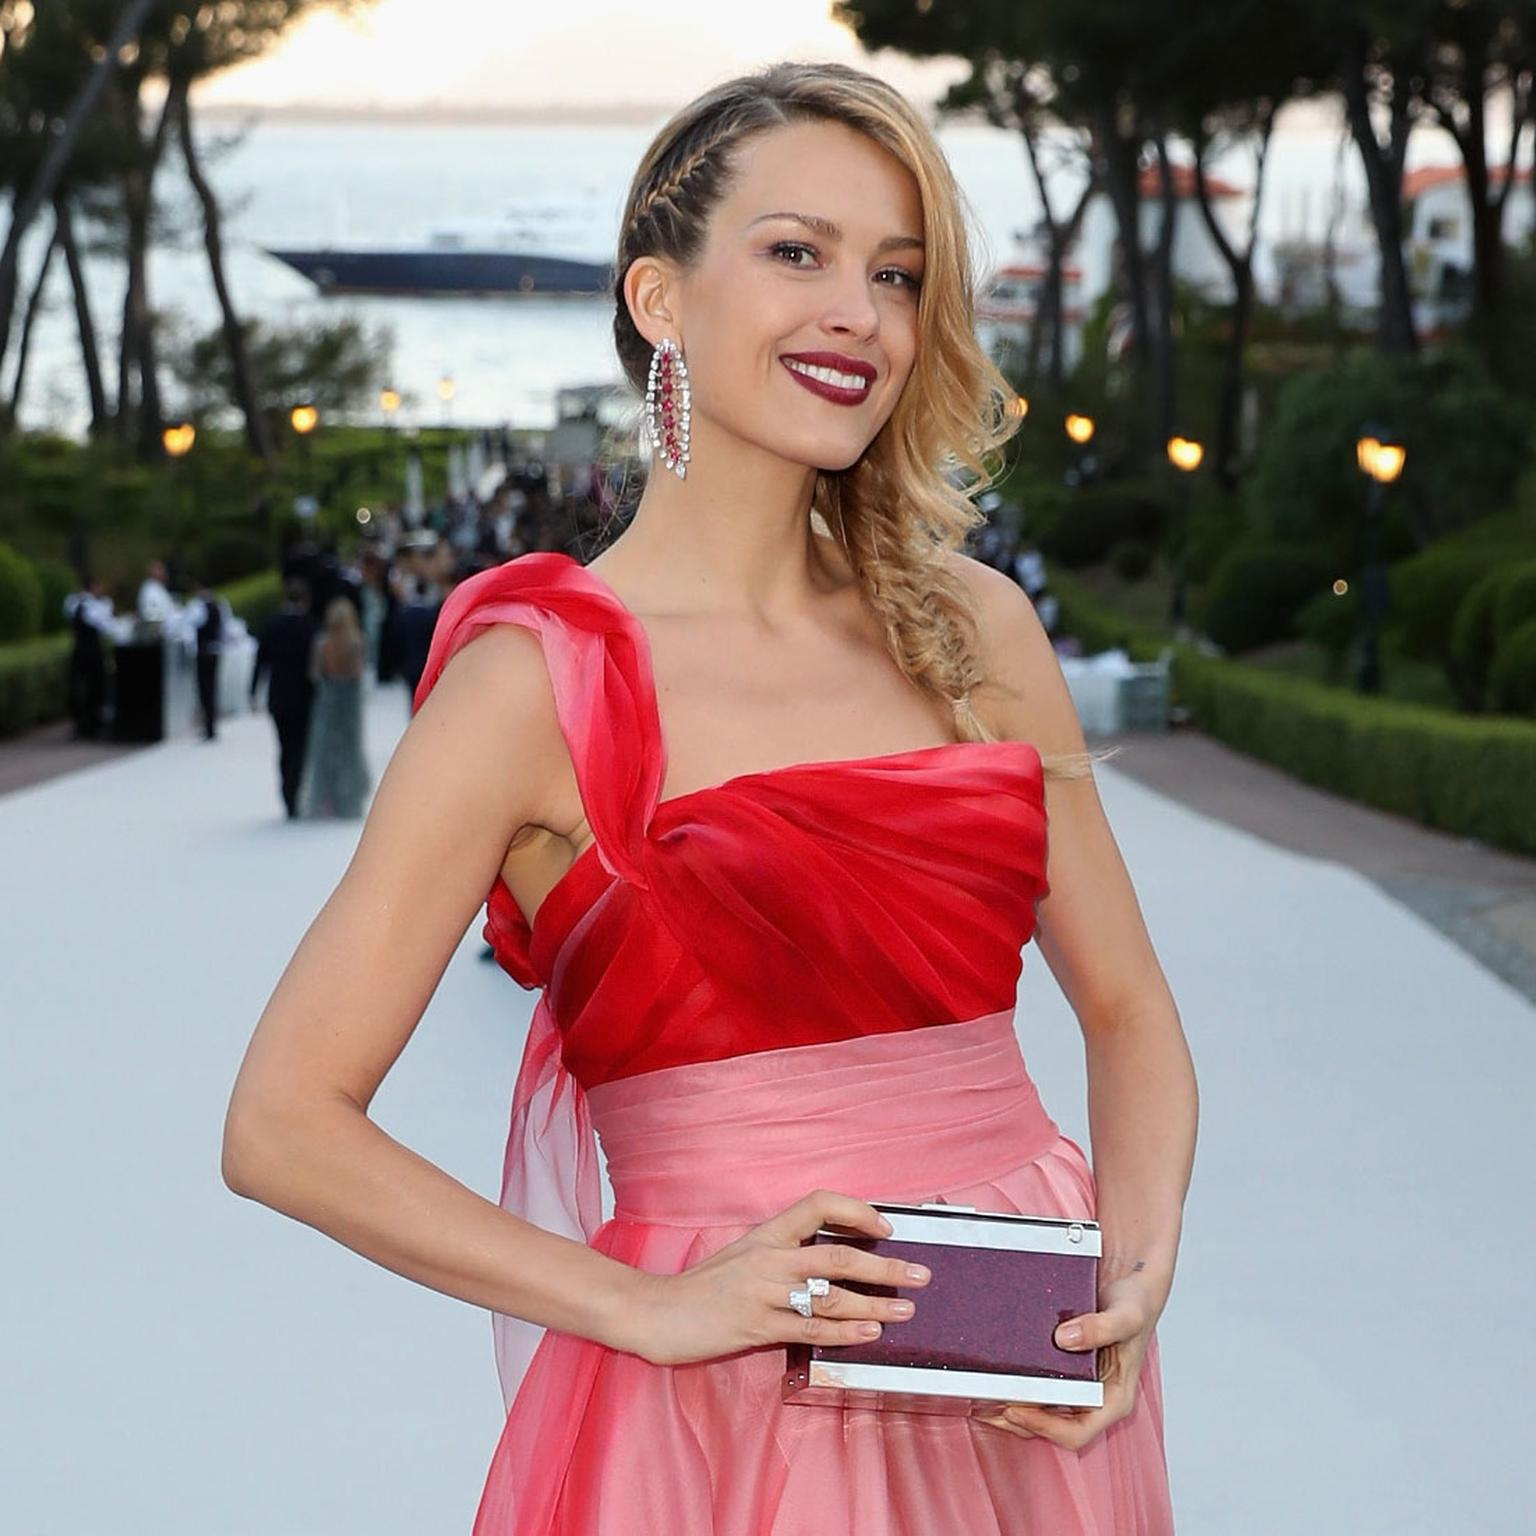 Cannes 2016 Day 9: Petra Nemcova in Chopard